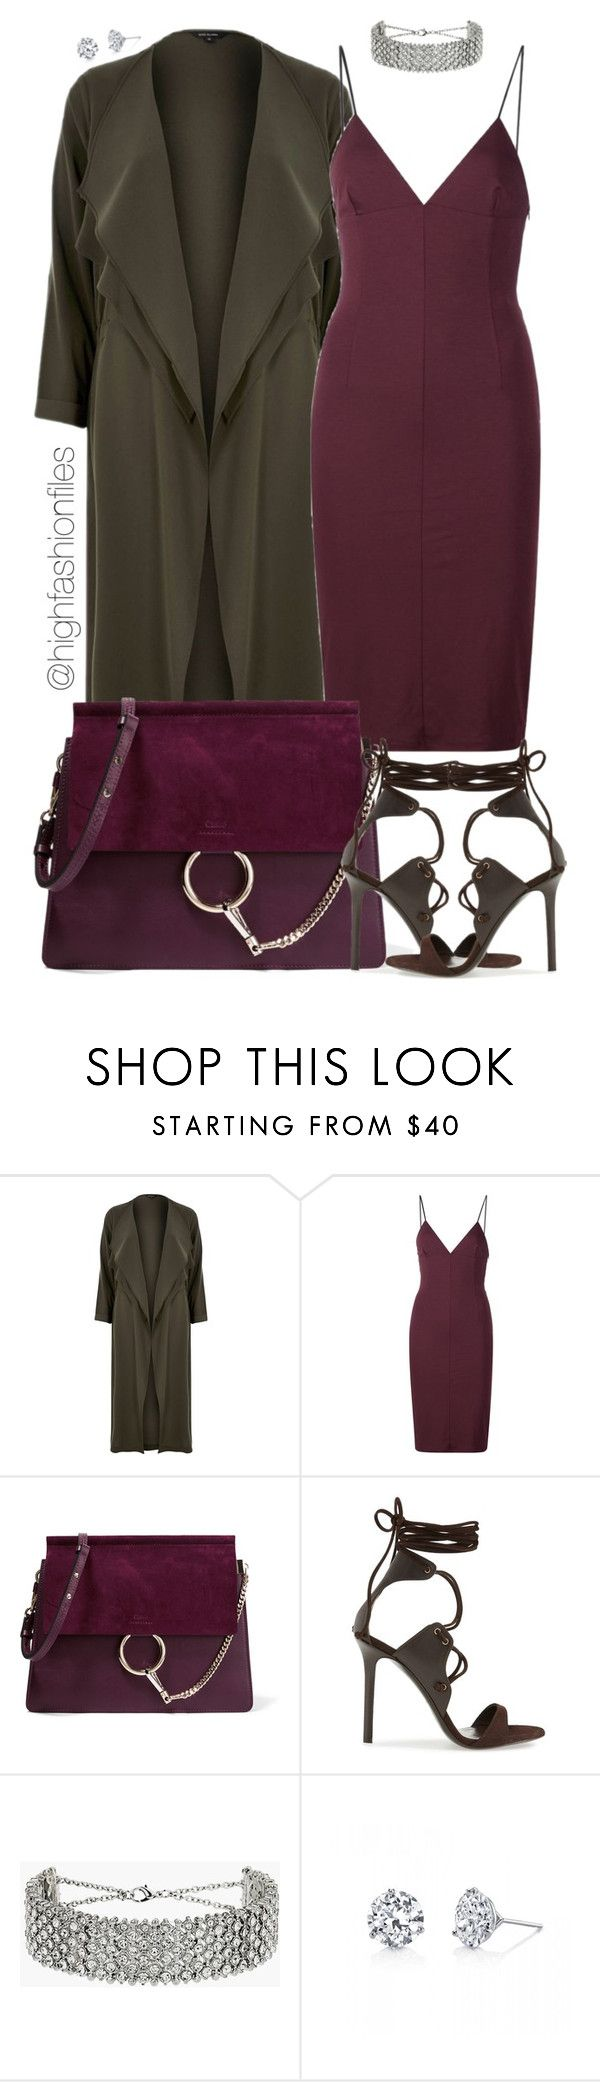 """Untitled #2633"" by highfashionfiles ❤ liked on Polyvore featuring River Island, T By Alexander Wang, Chloé, Tamara Mellon, Topshop and Harry Kotlar"